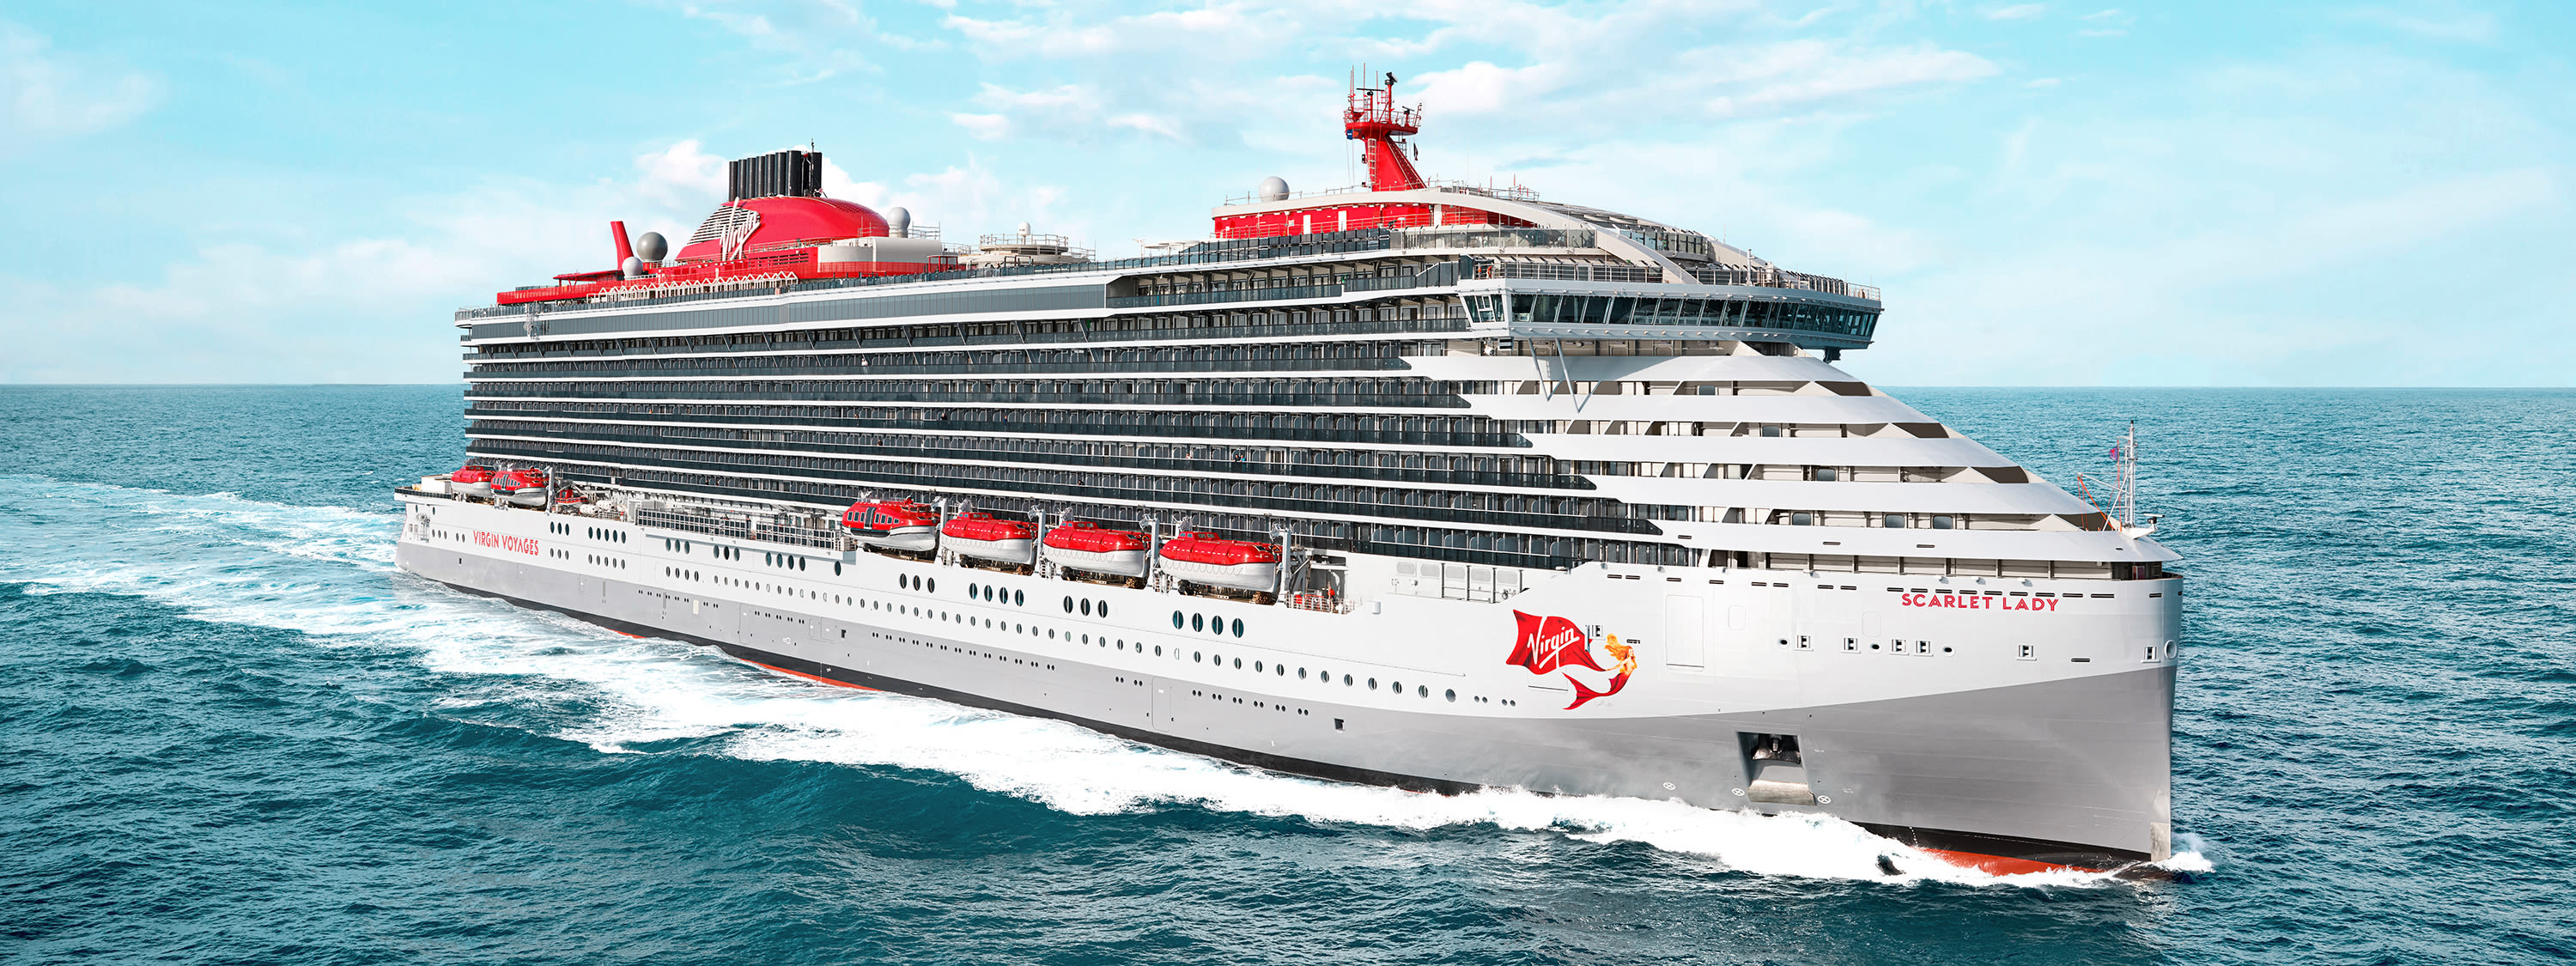 Virgin Voyages' ship Scarlet Lady at sea